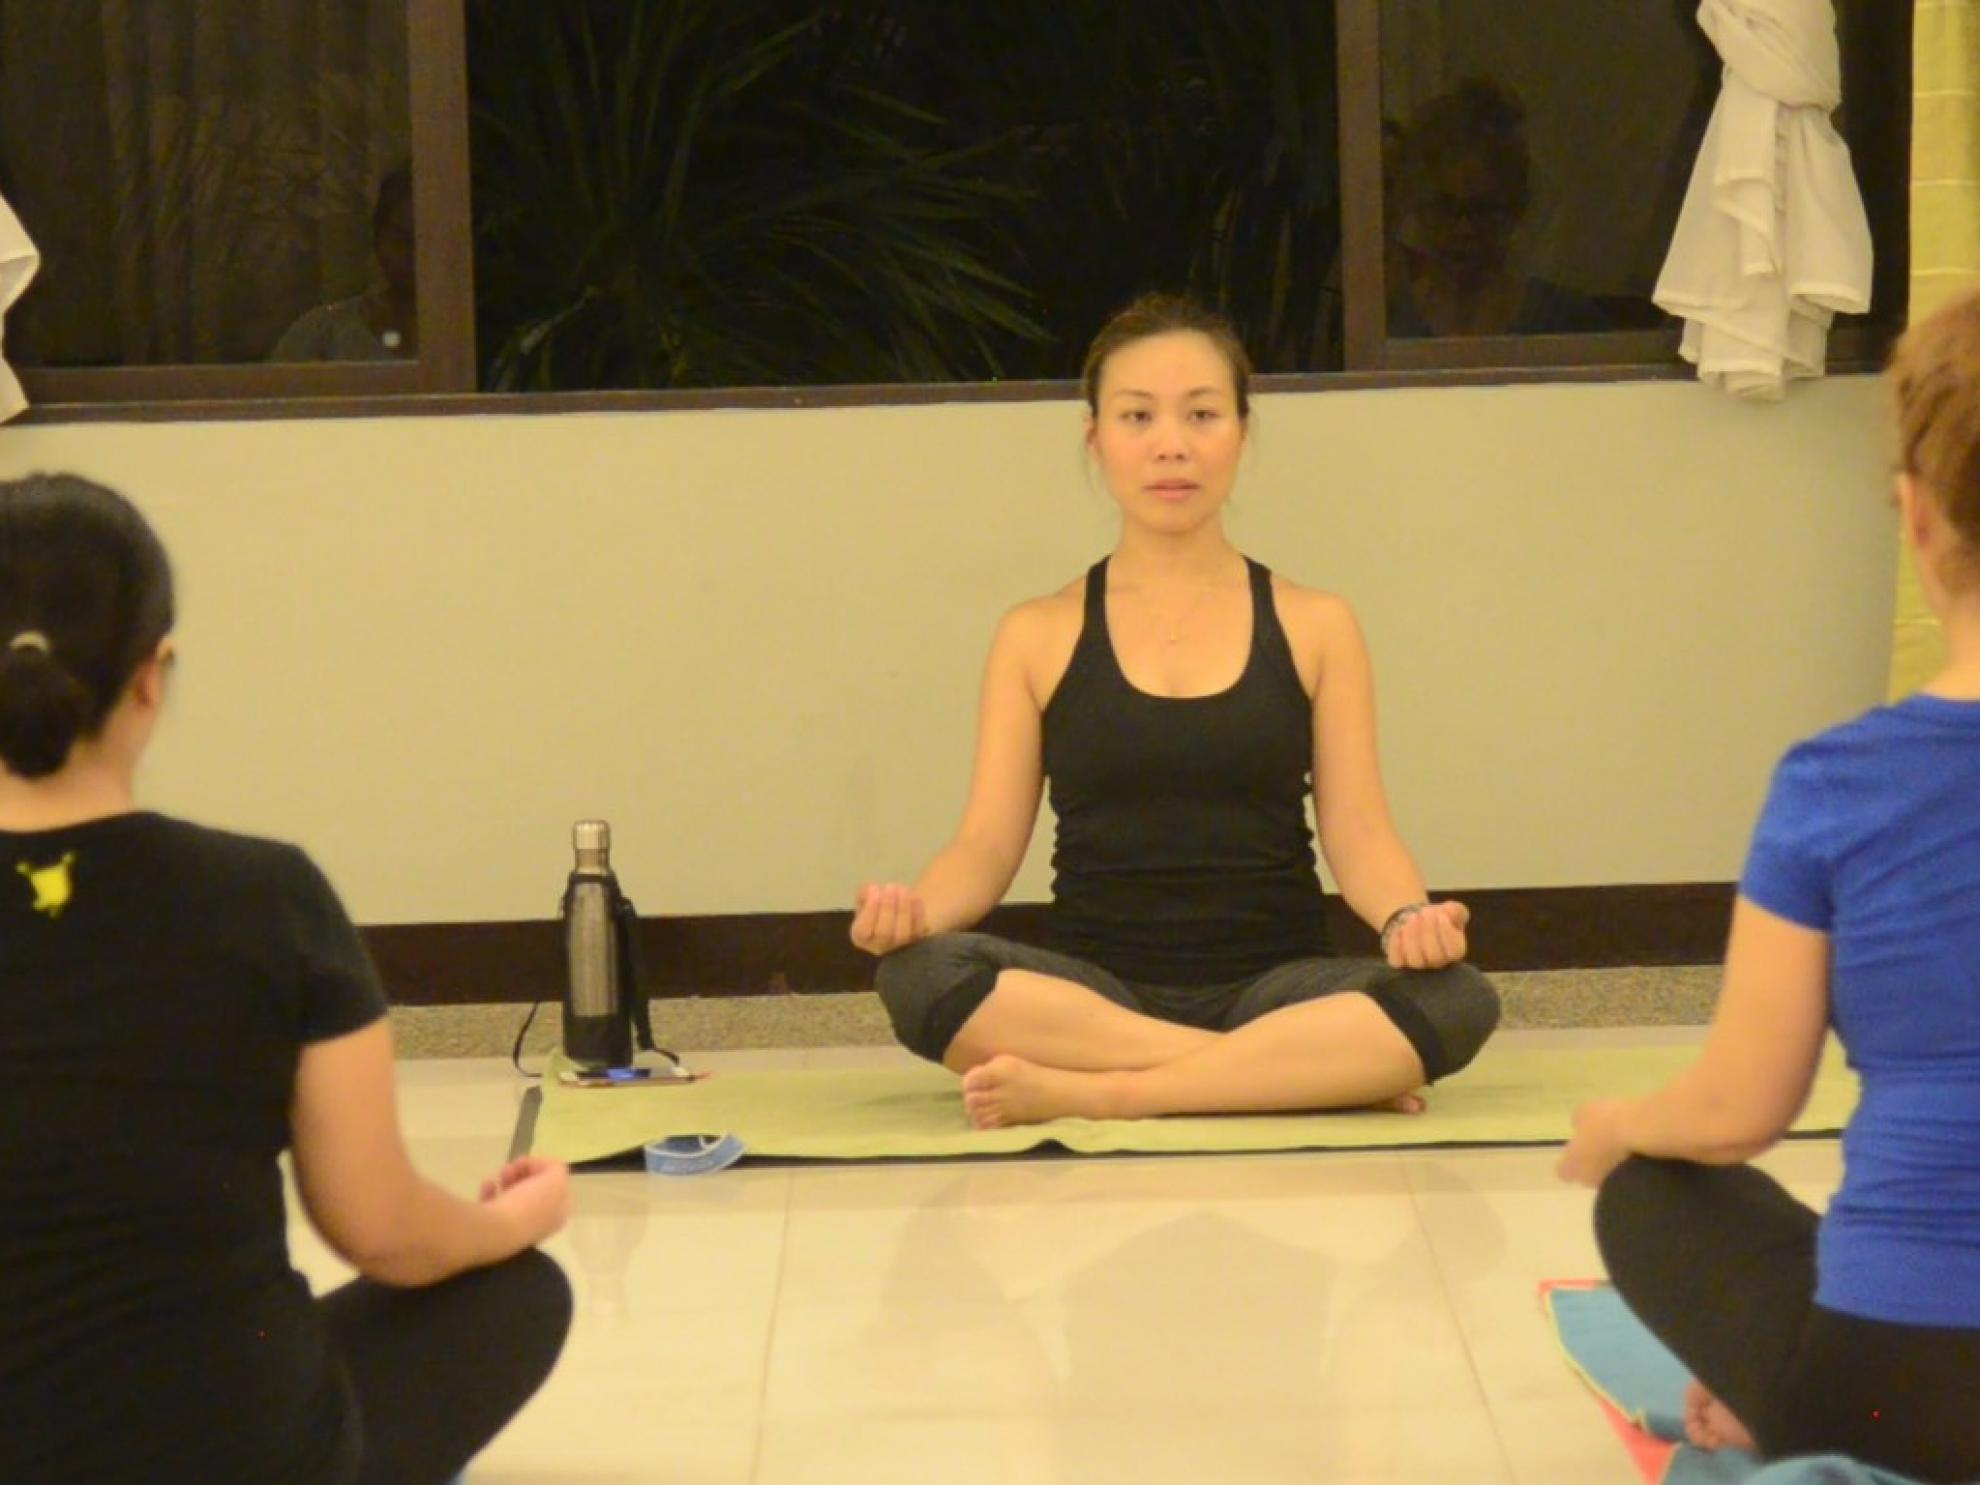 Finding inner peace through yoga and community fellowship